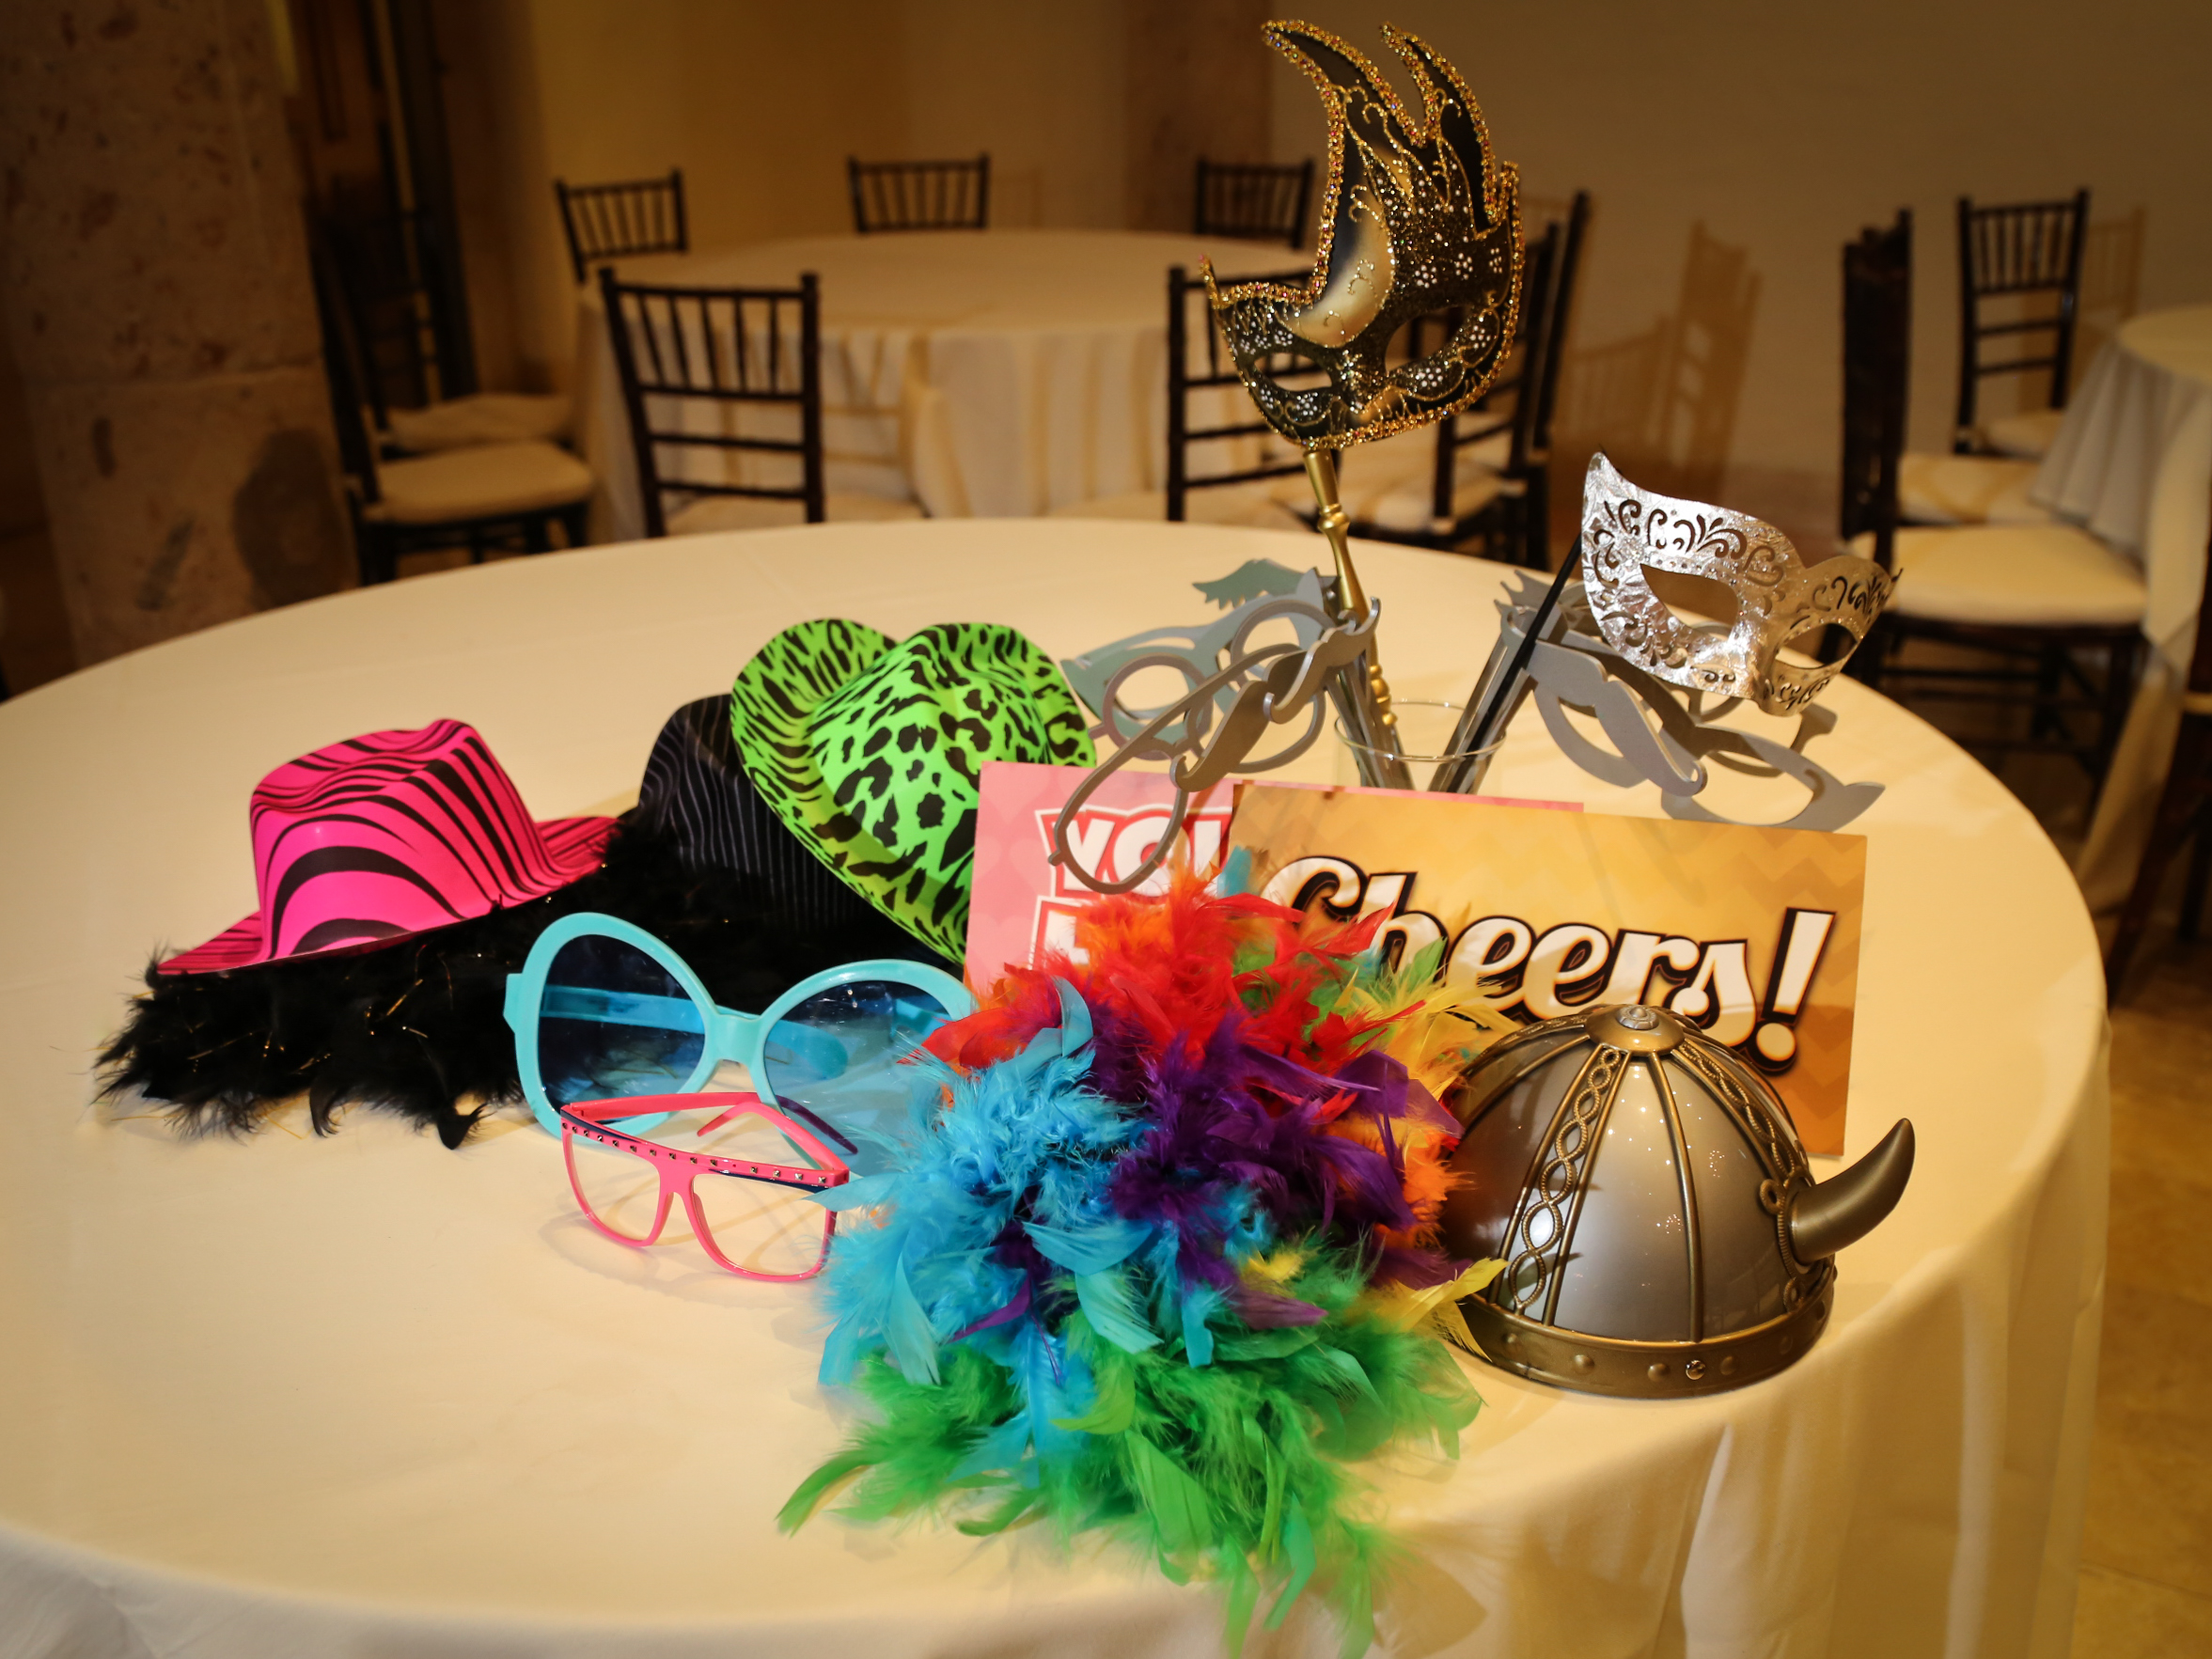 A variety of fun props is included with the Photobooth